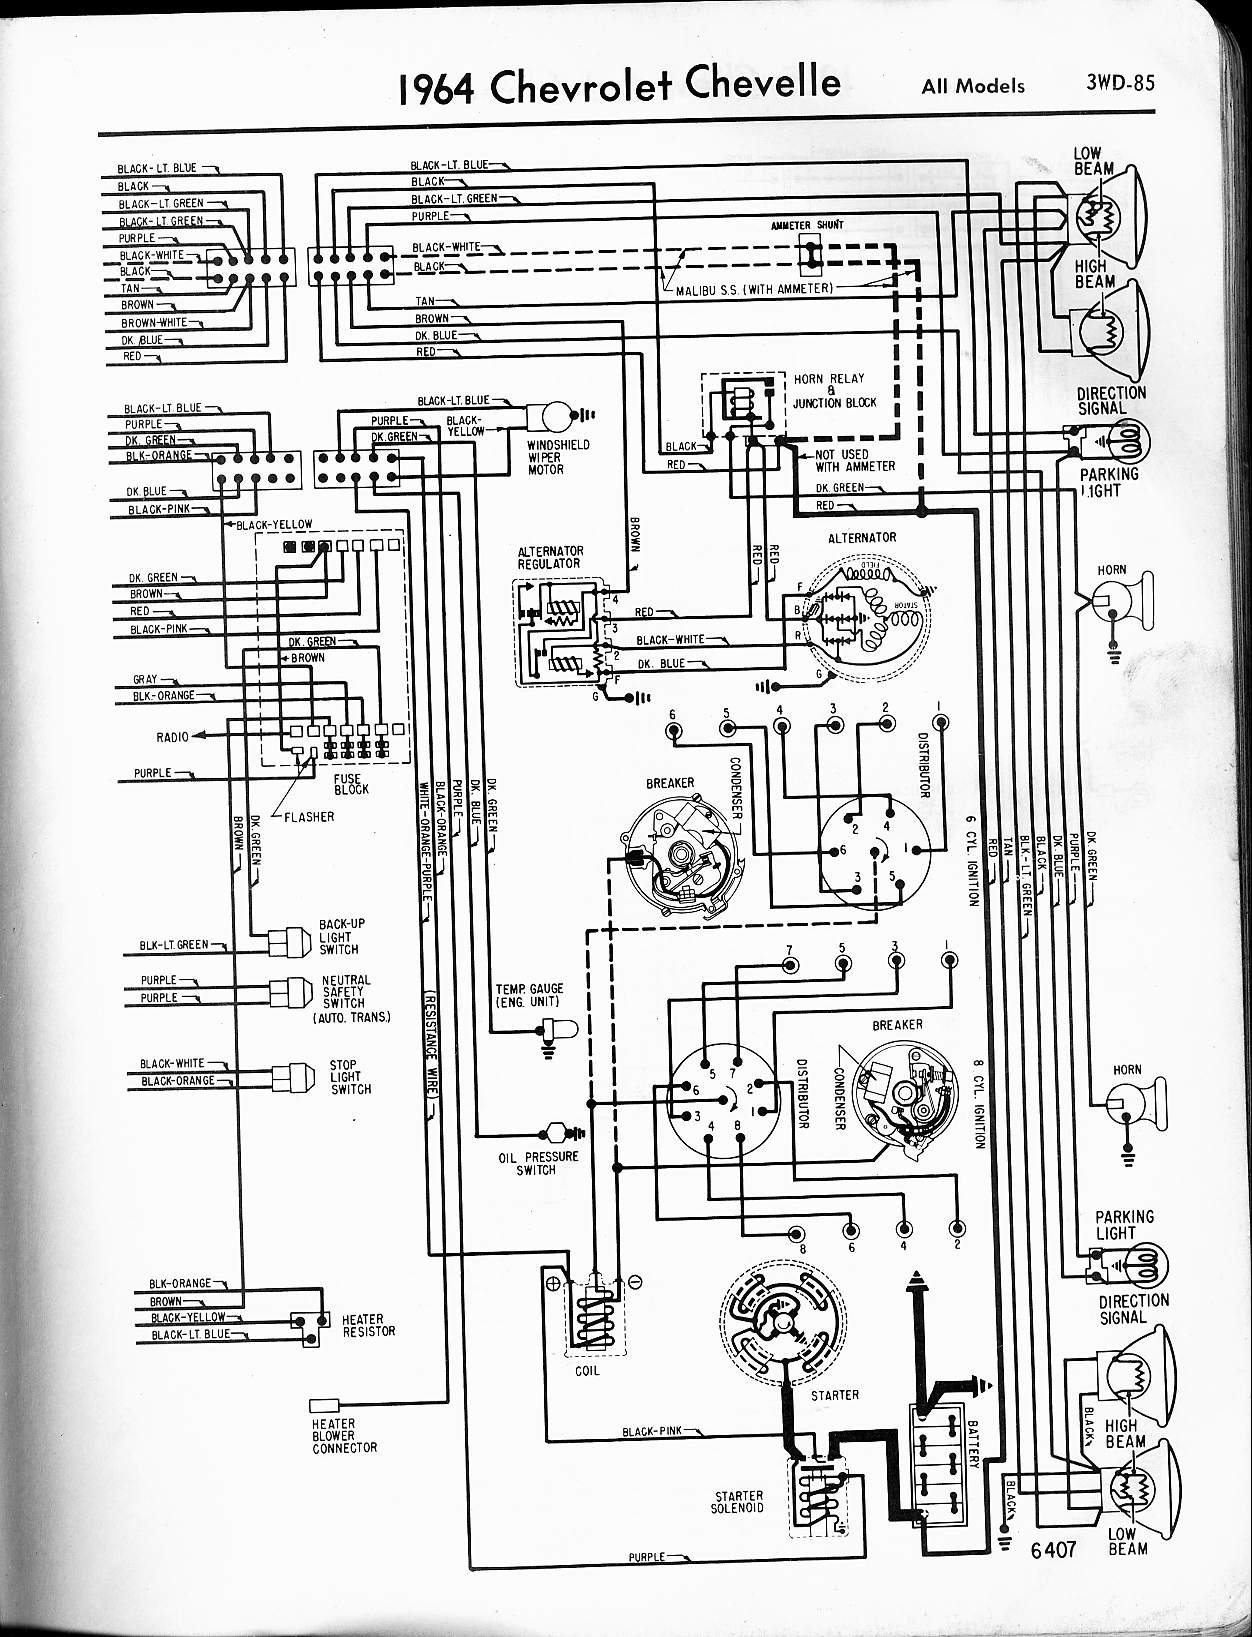 MWireChev64_3WD 085 chevy diagrams 69 chevelle dash wiring diagram at mifinder.co